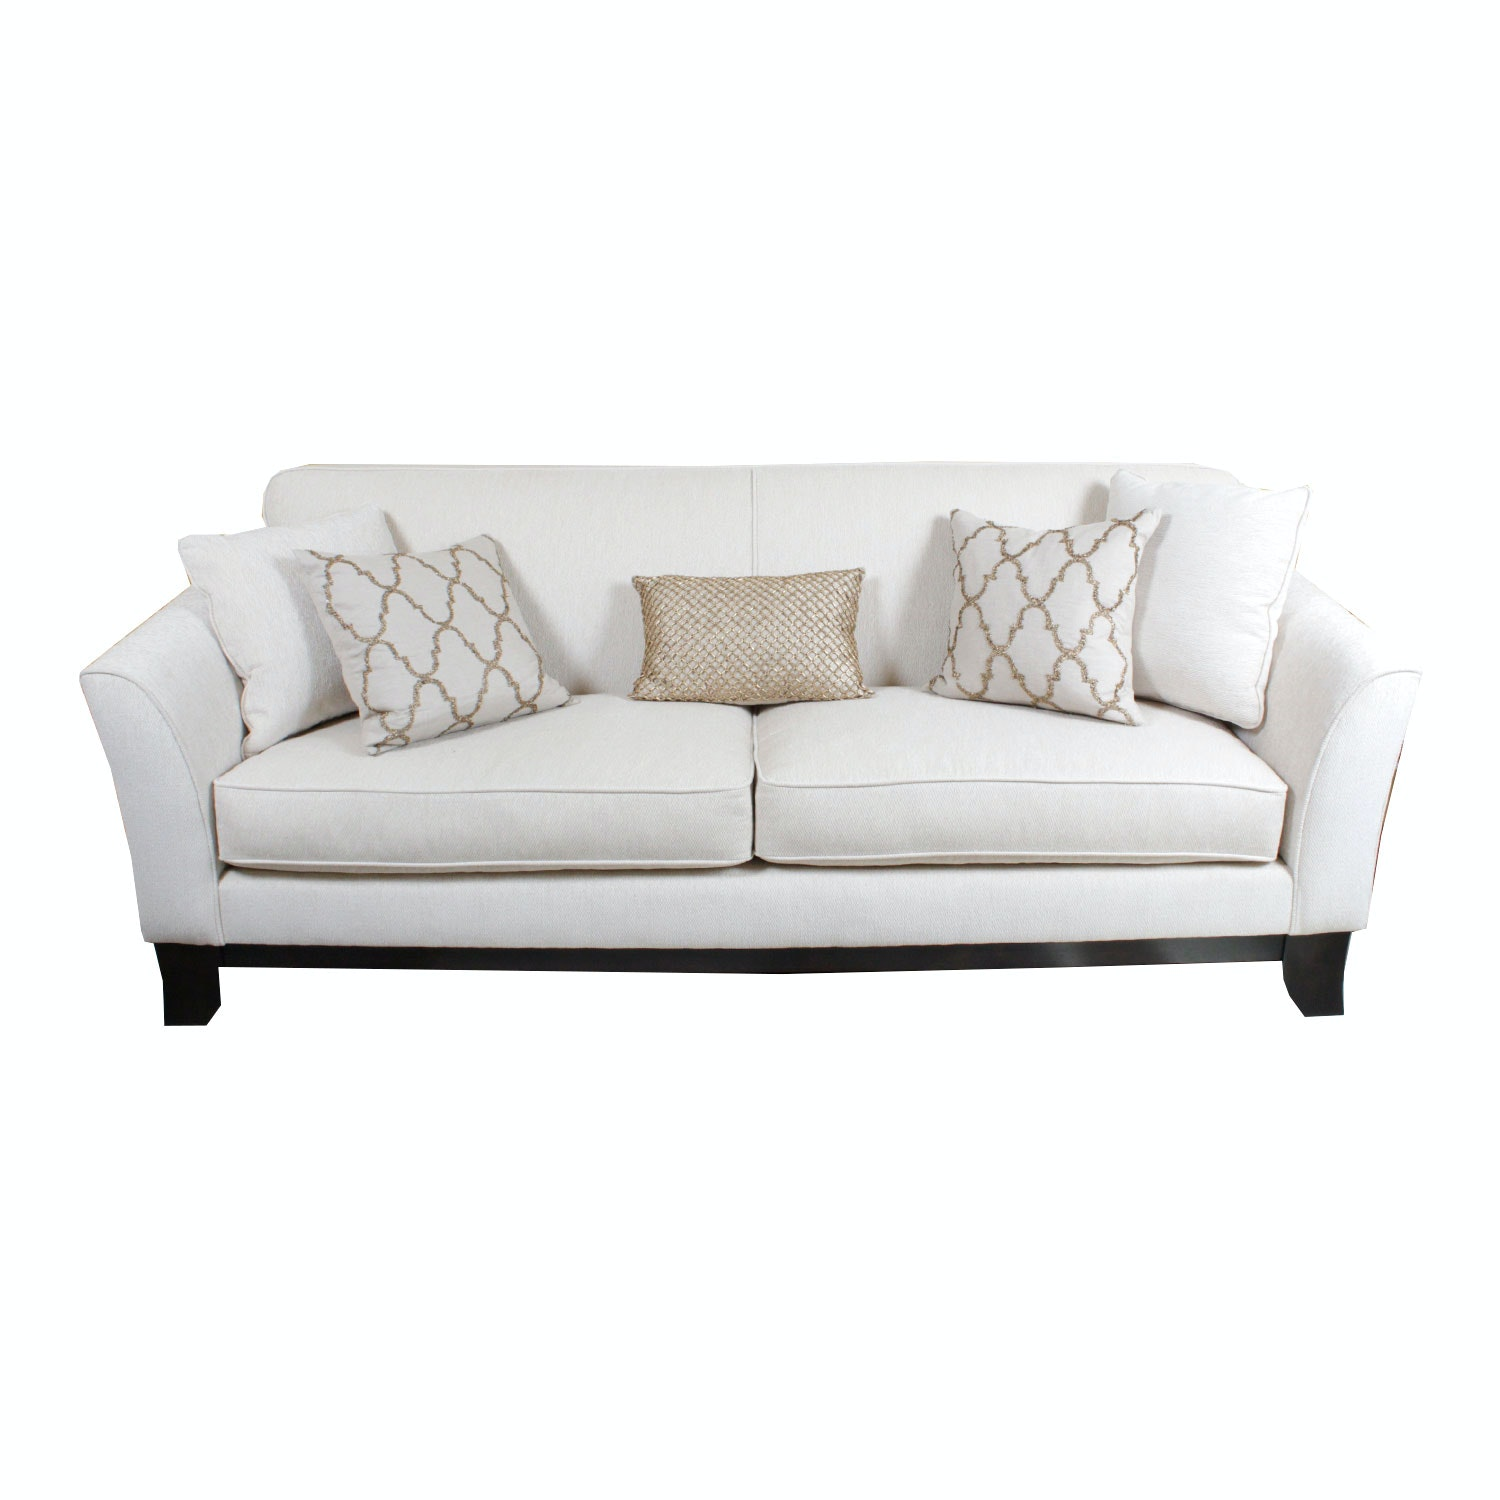 Greenwich Upholstered Sofa By Pottery Barn ...